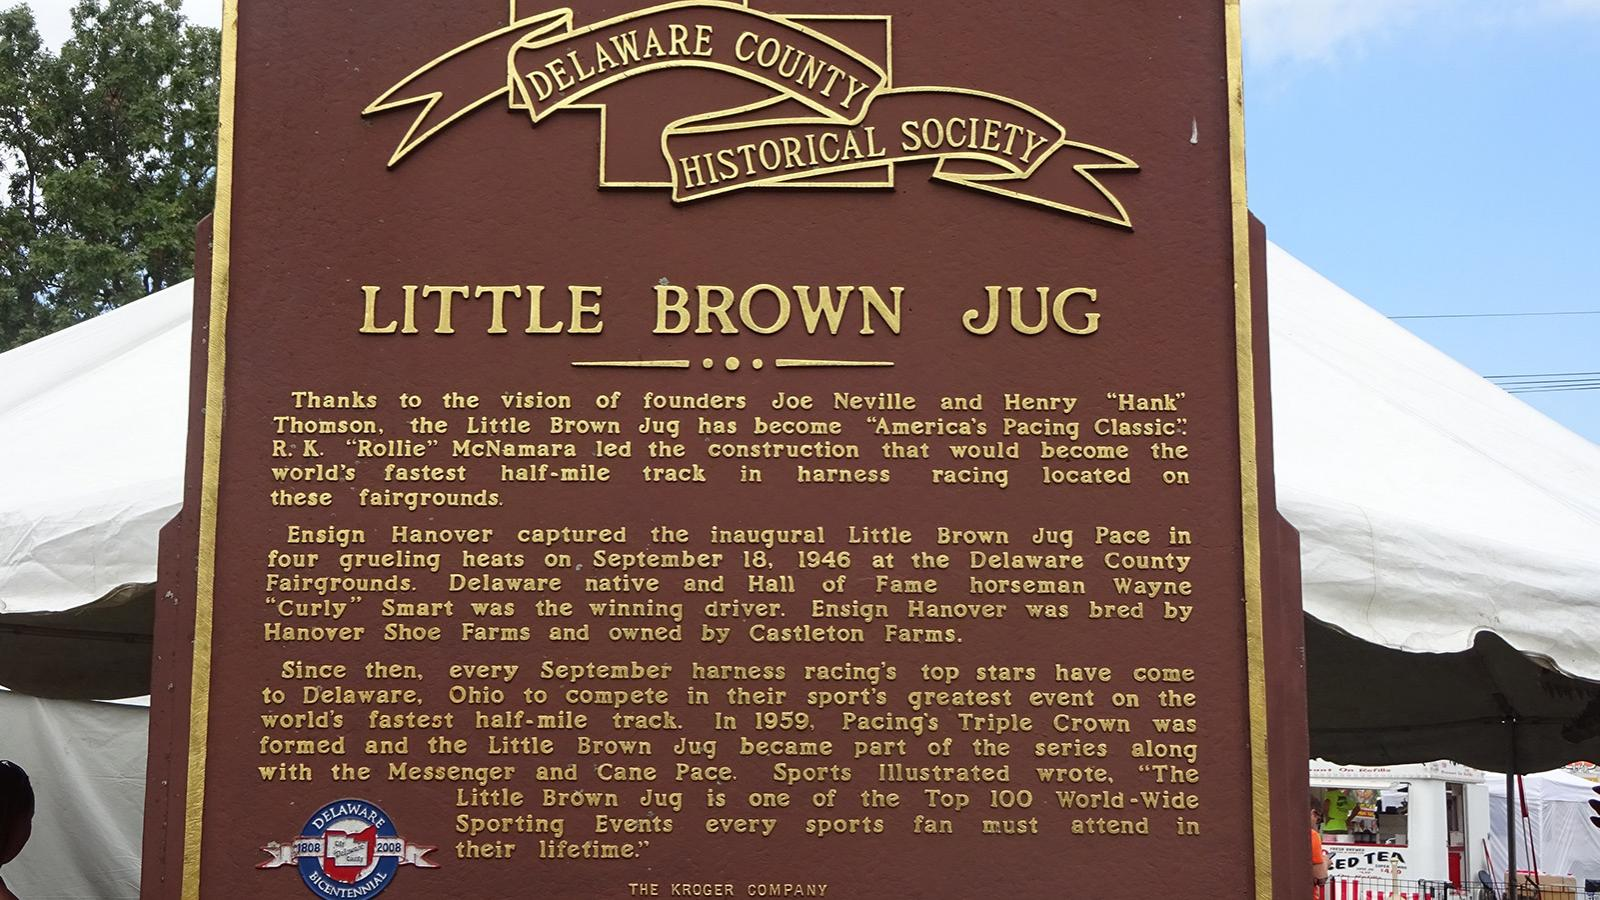 Historical marker for the Little Brown Jug